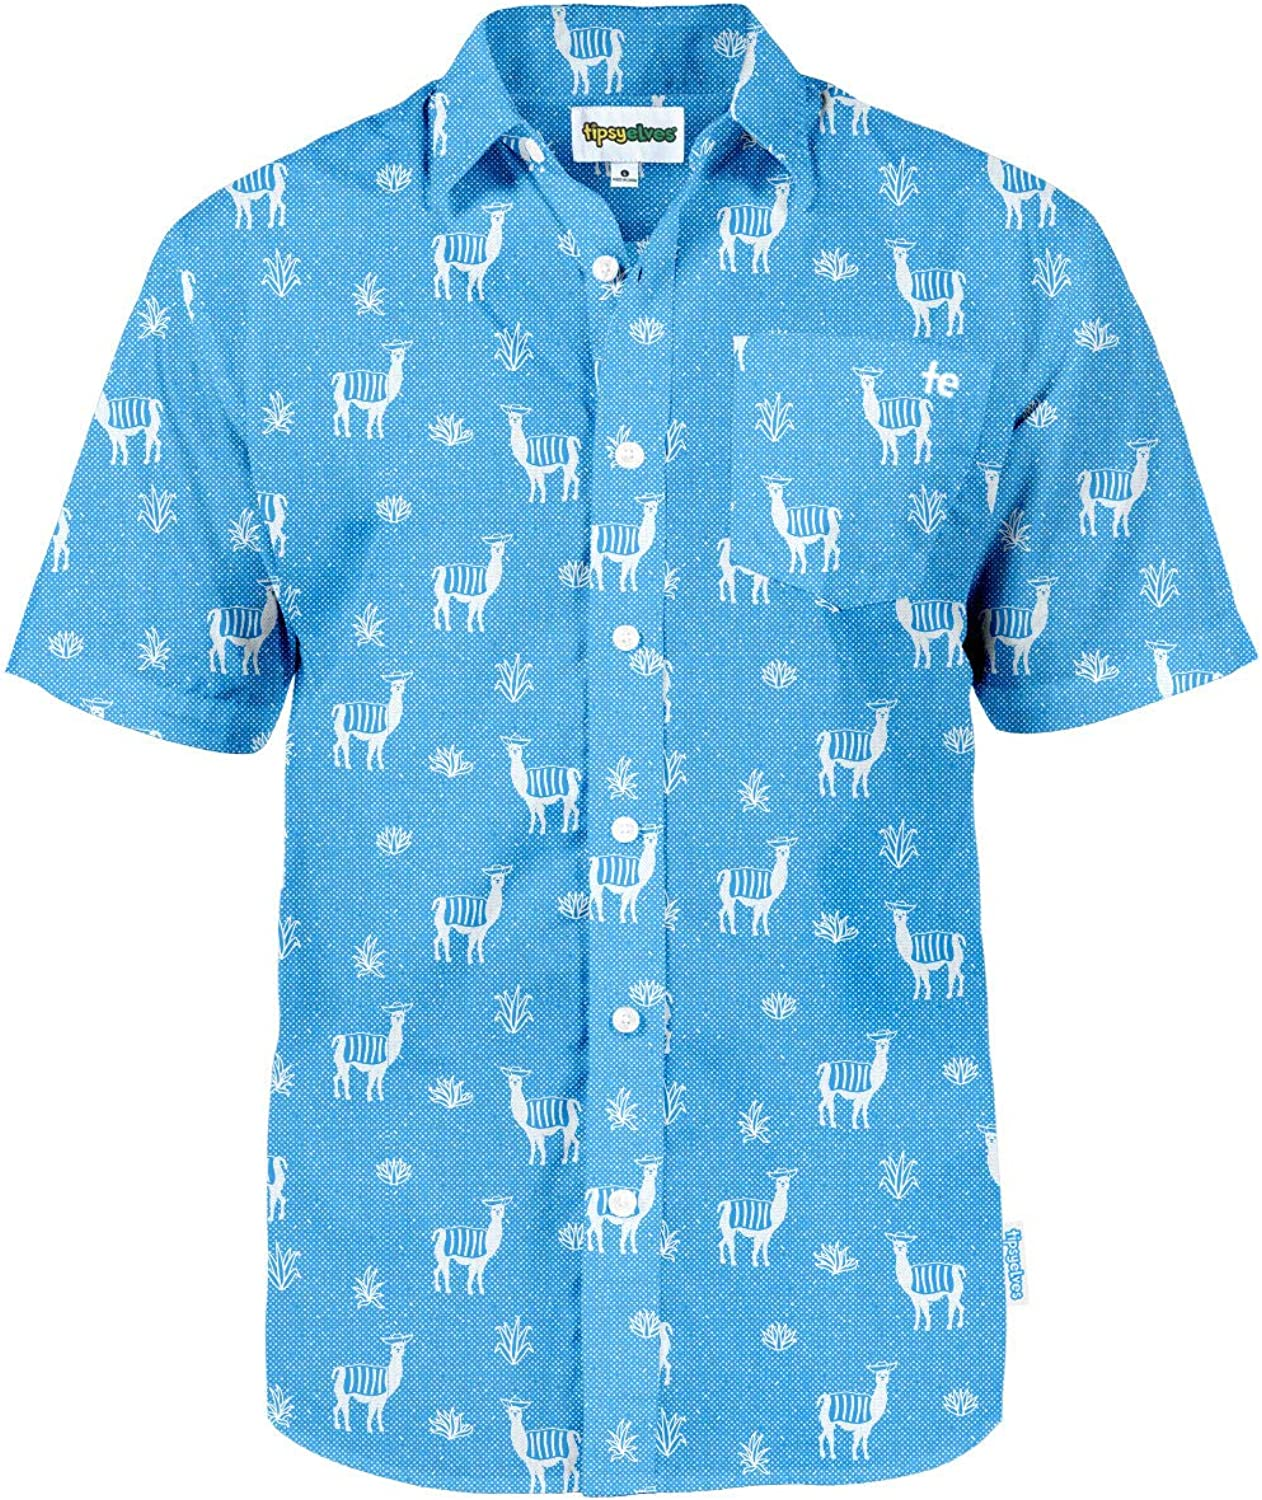 Men's Bright Hawaiian Shirt for Spring Break and Summer - Funny Aloha Shirt for Guys